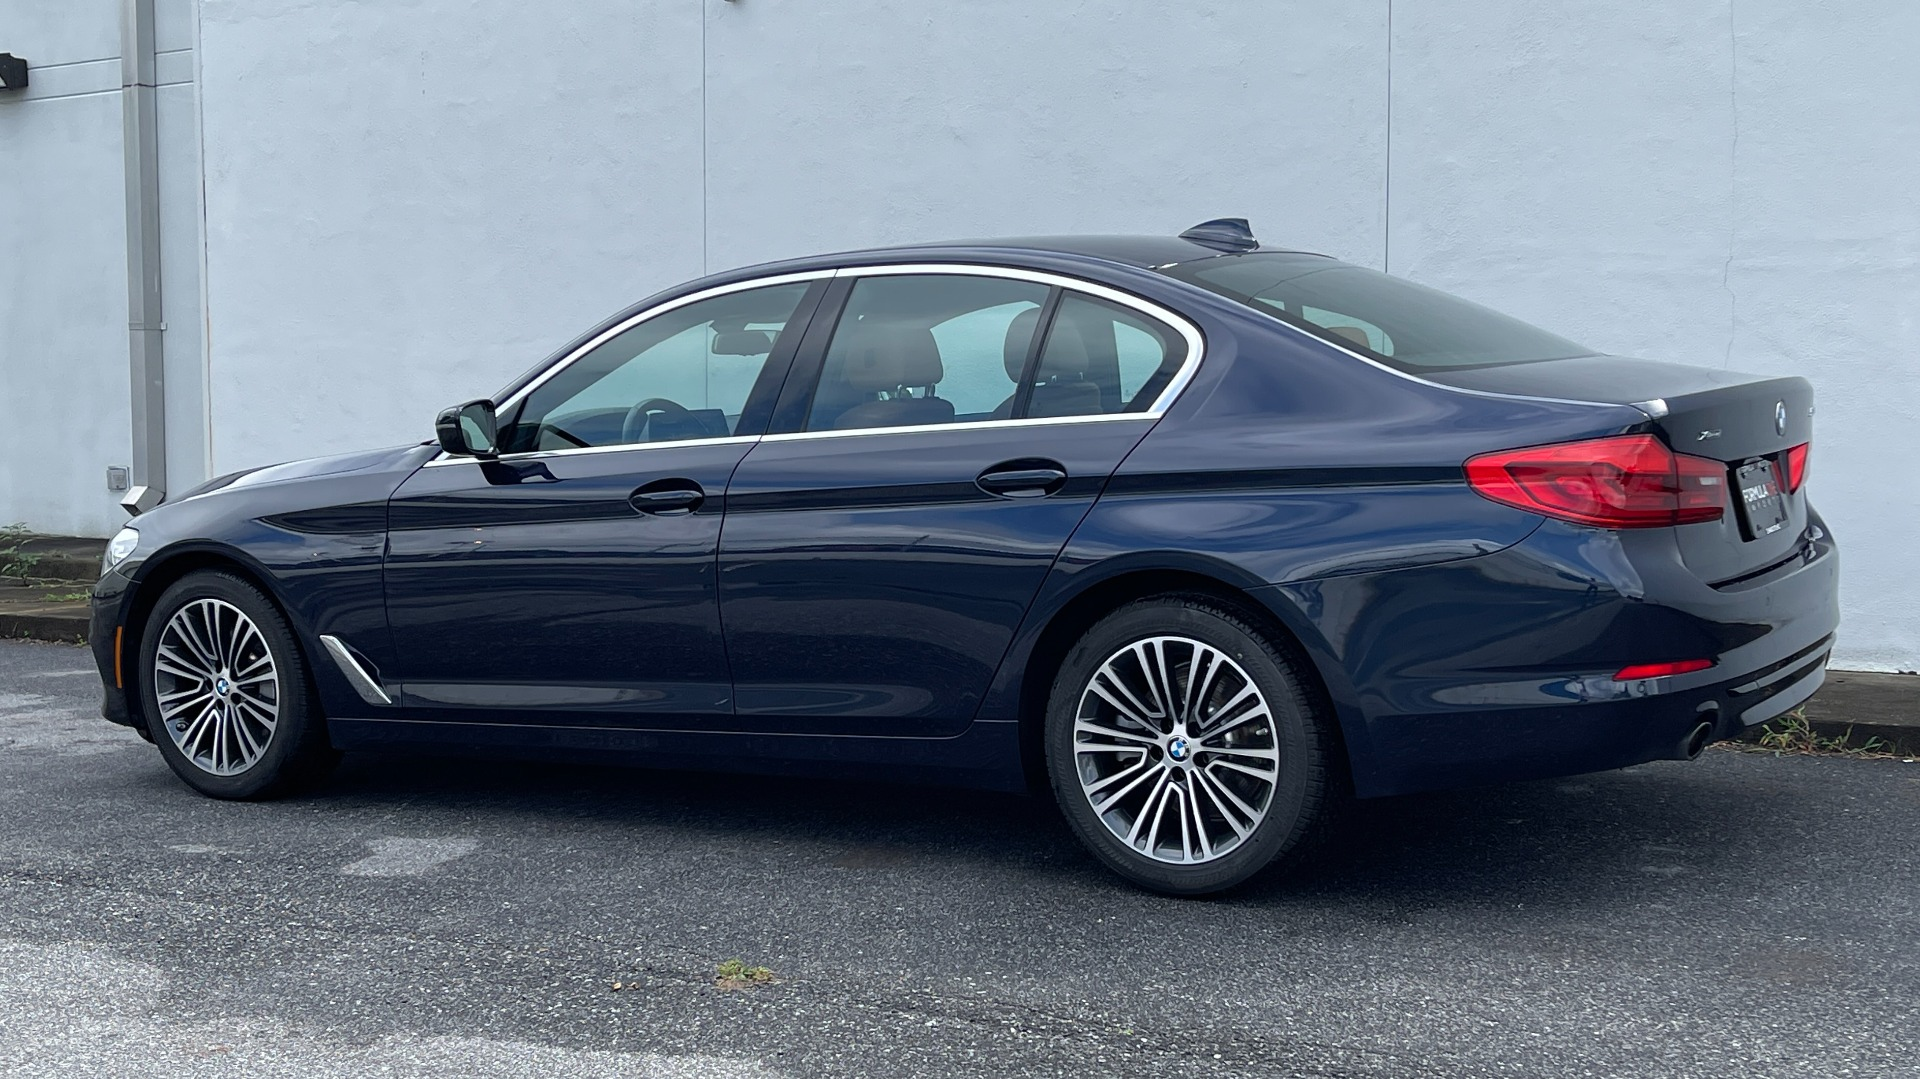 Used 2019 BMW 5 SERIES 530I XDRIVE / CONV PKG / PDC / NAV / SUNROOF / HTD STS / REARIEW for sale $39,595 at Formula Imports in Charlotte NC 28227 6